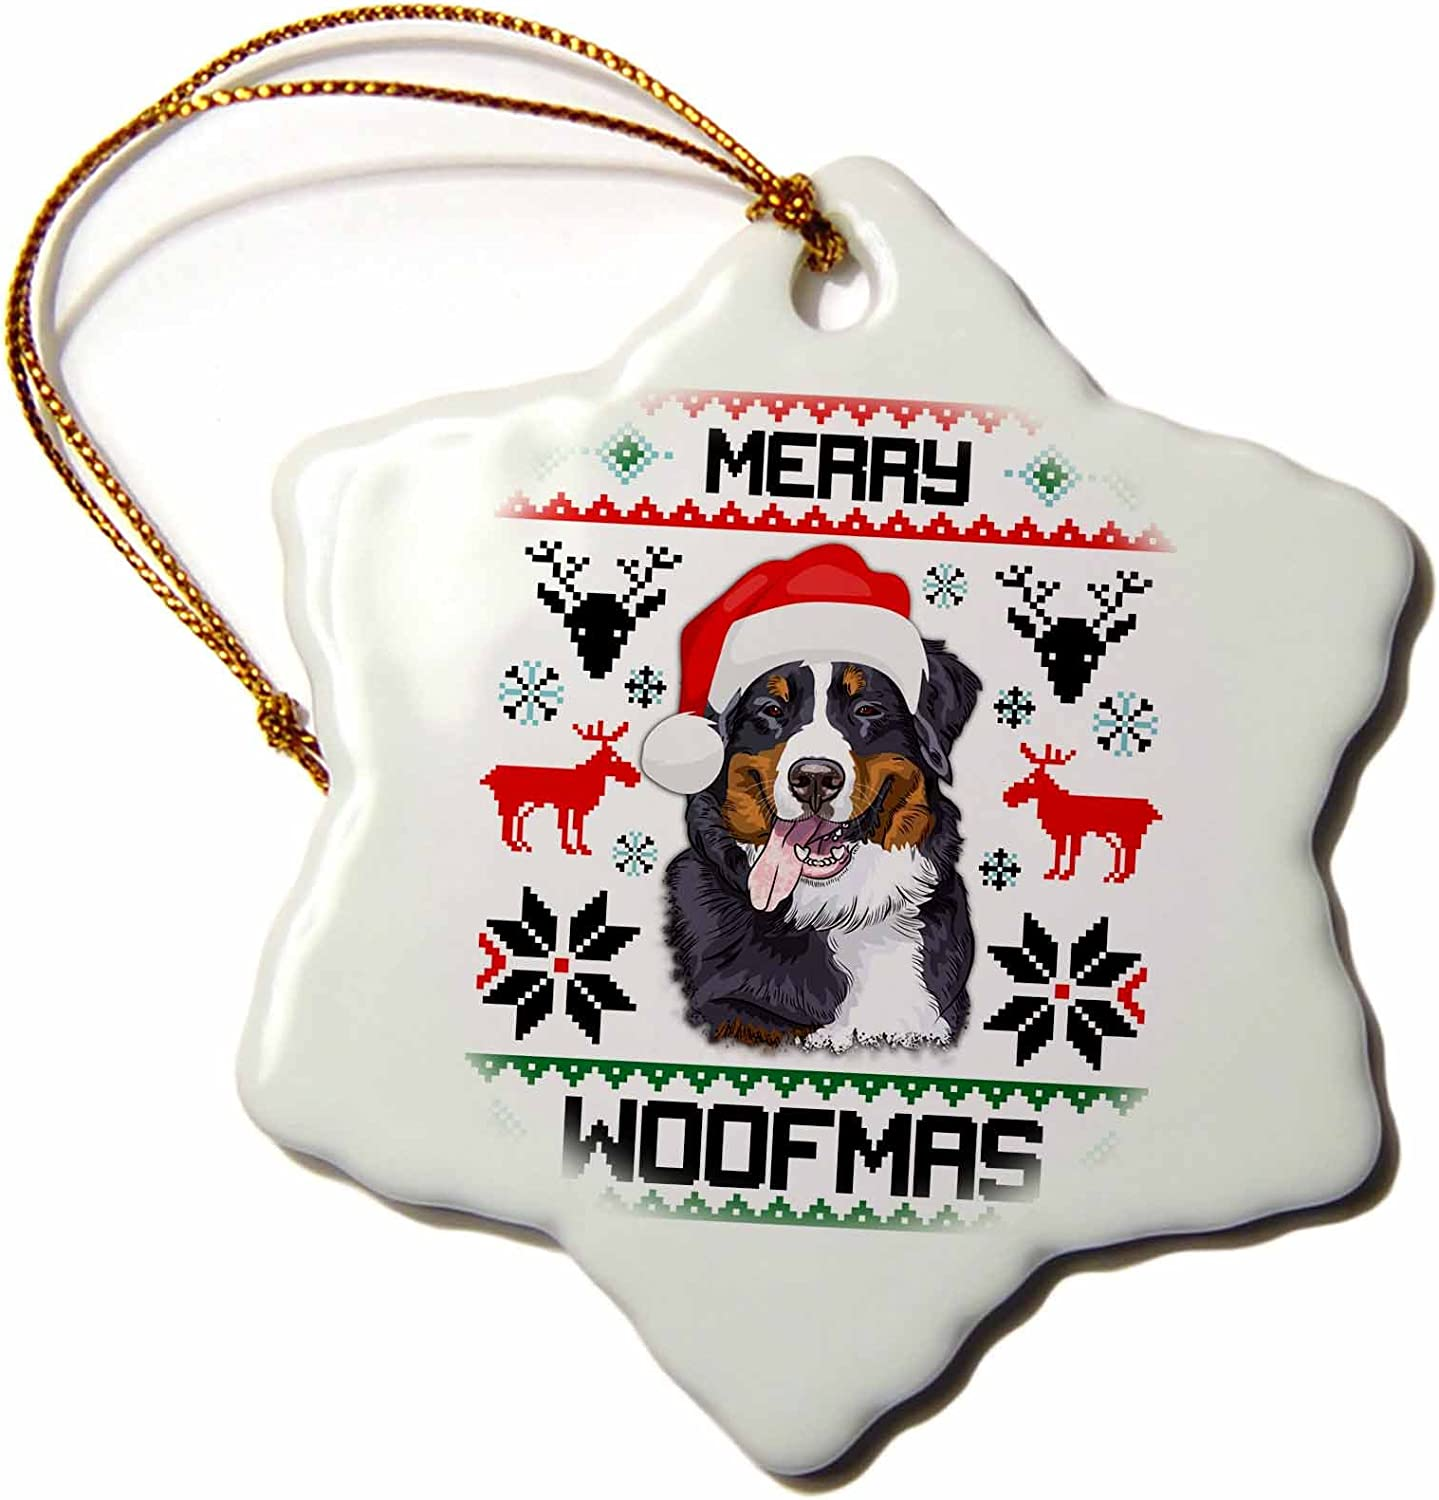 3 inch Snowflake Porcelain Ornament Merry Woofmas Bernese Mountain Dog Gift orn/_272797/_1 Illustrations 3dRose Carsten Reisinger